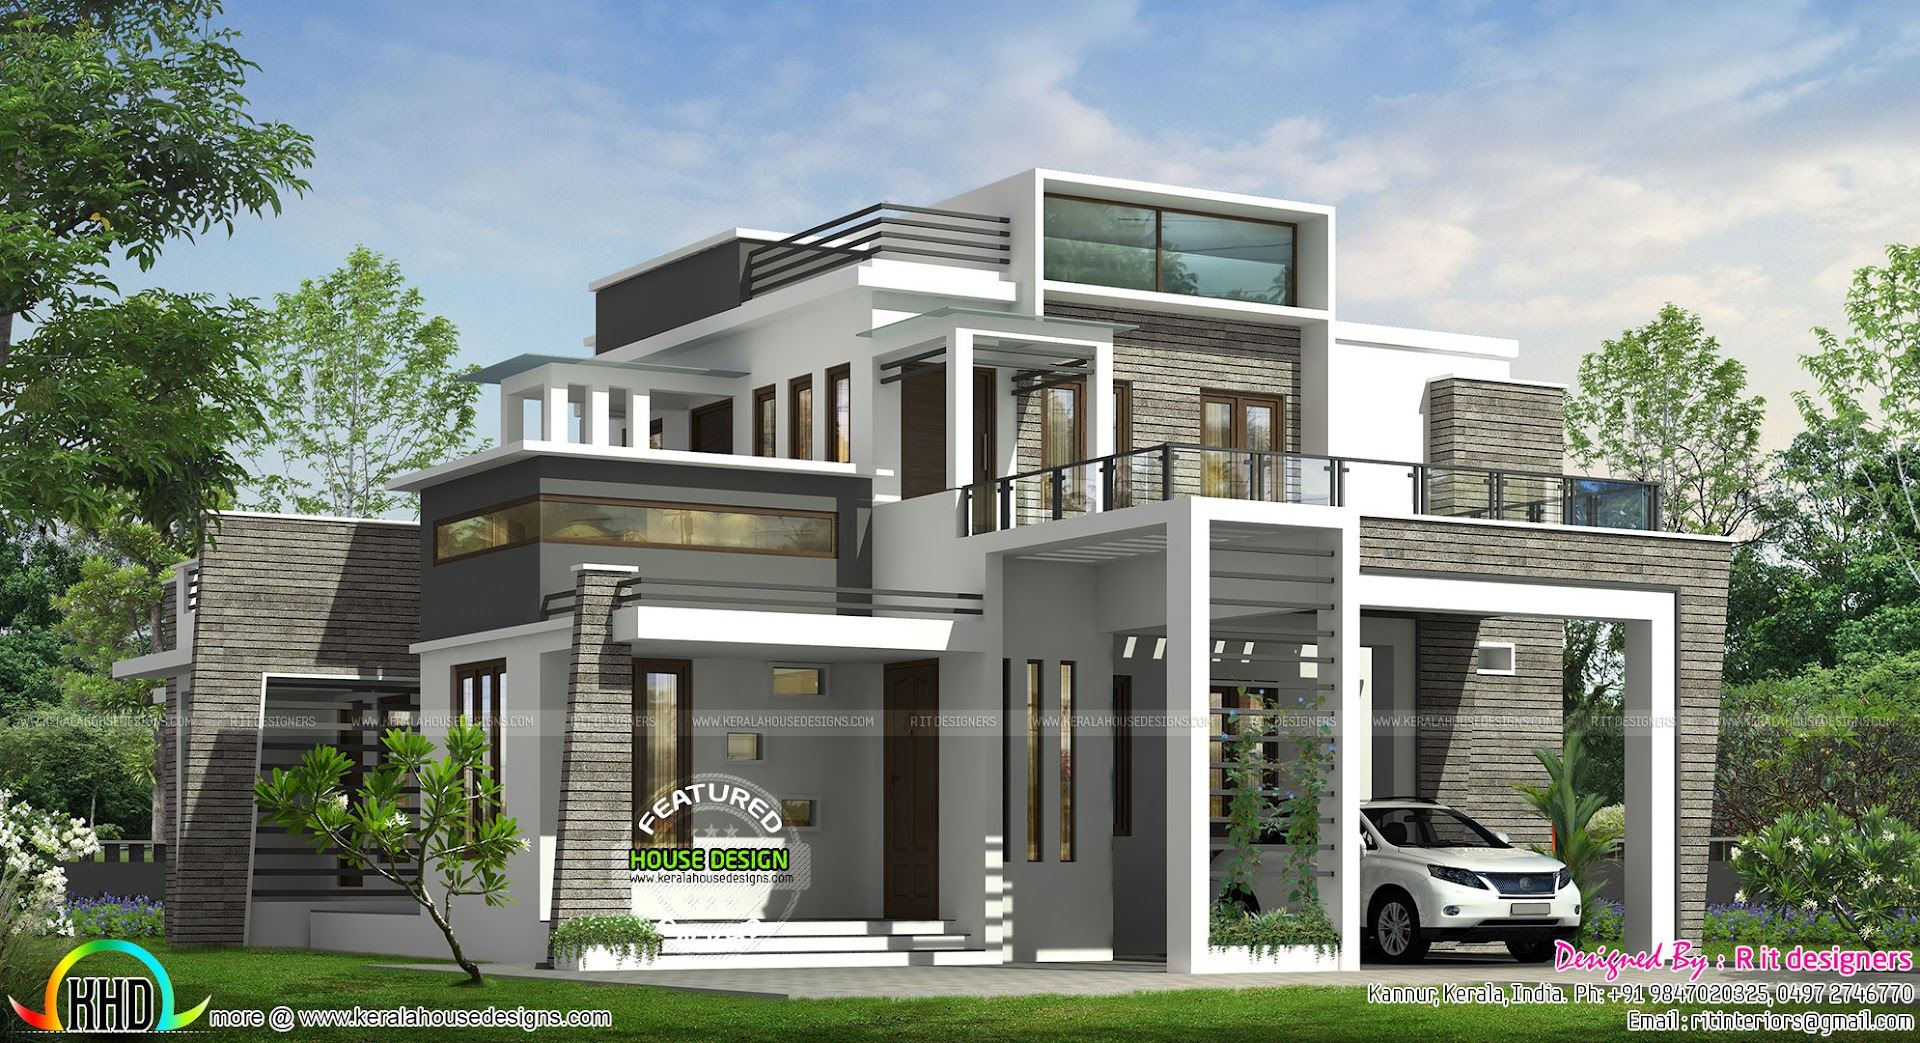 4 bhk modern box type house kerala home design and floor for Different home designs